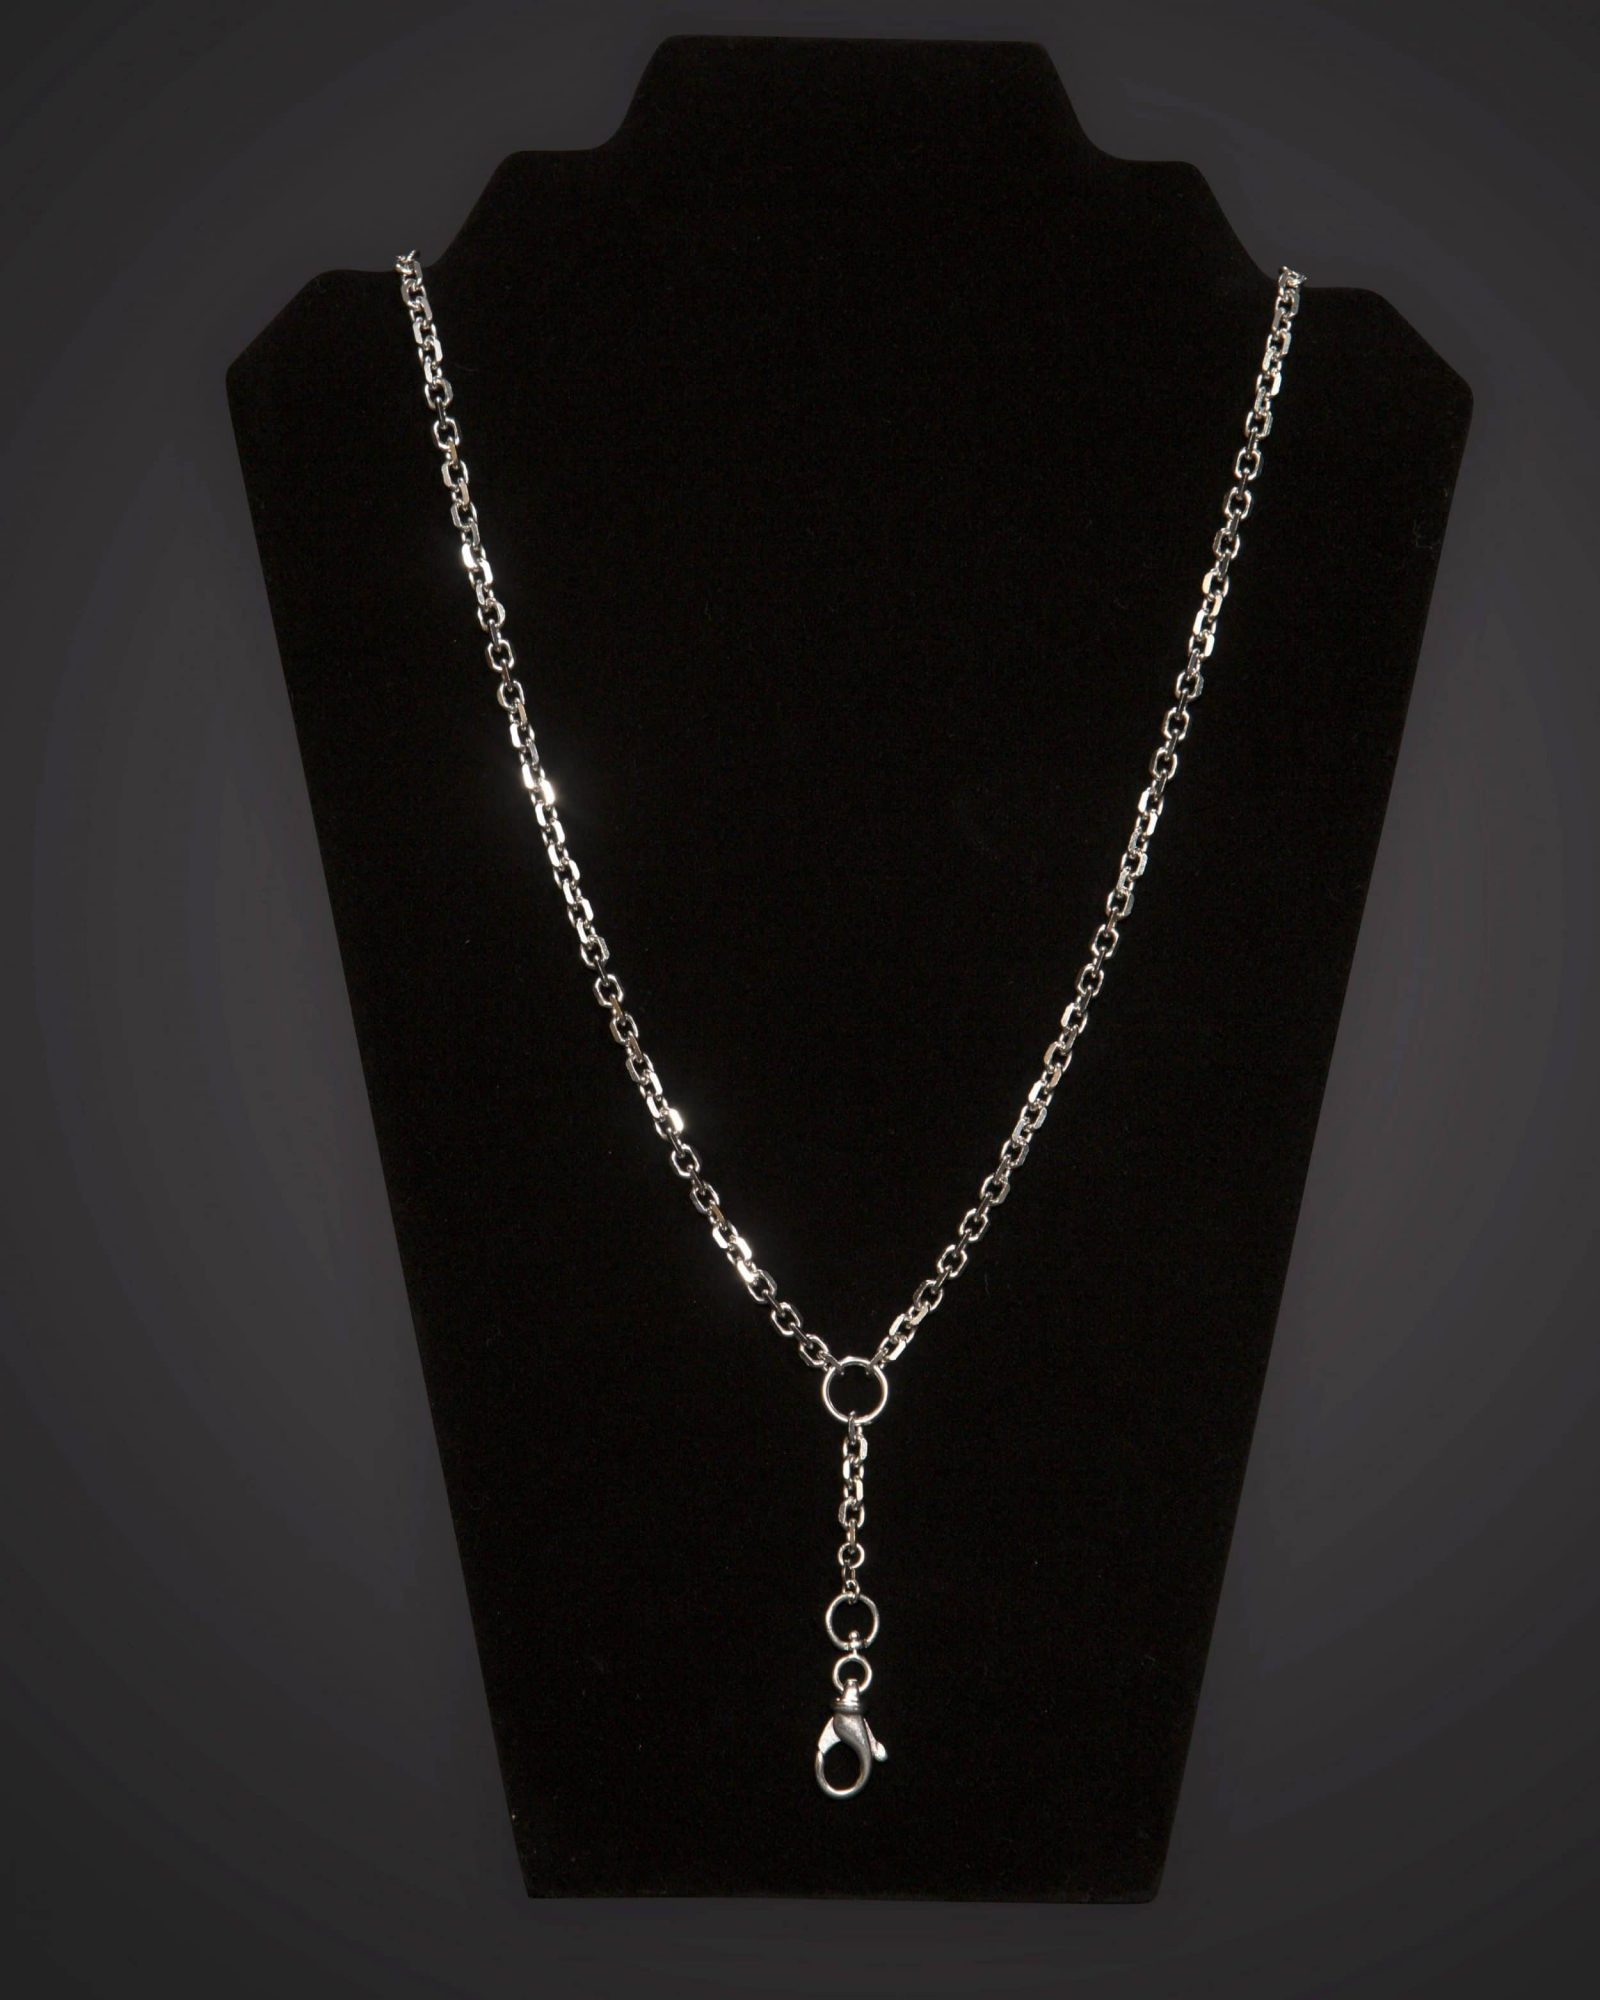 Pectoral Chain - Geo - Long - Silver Plated